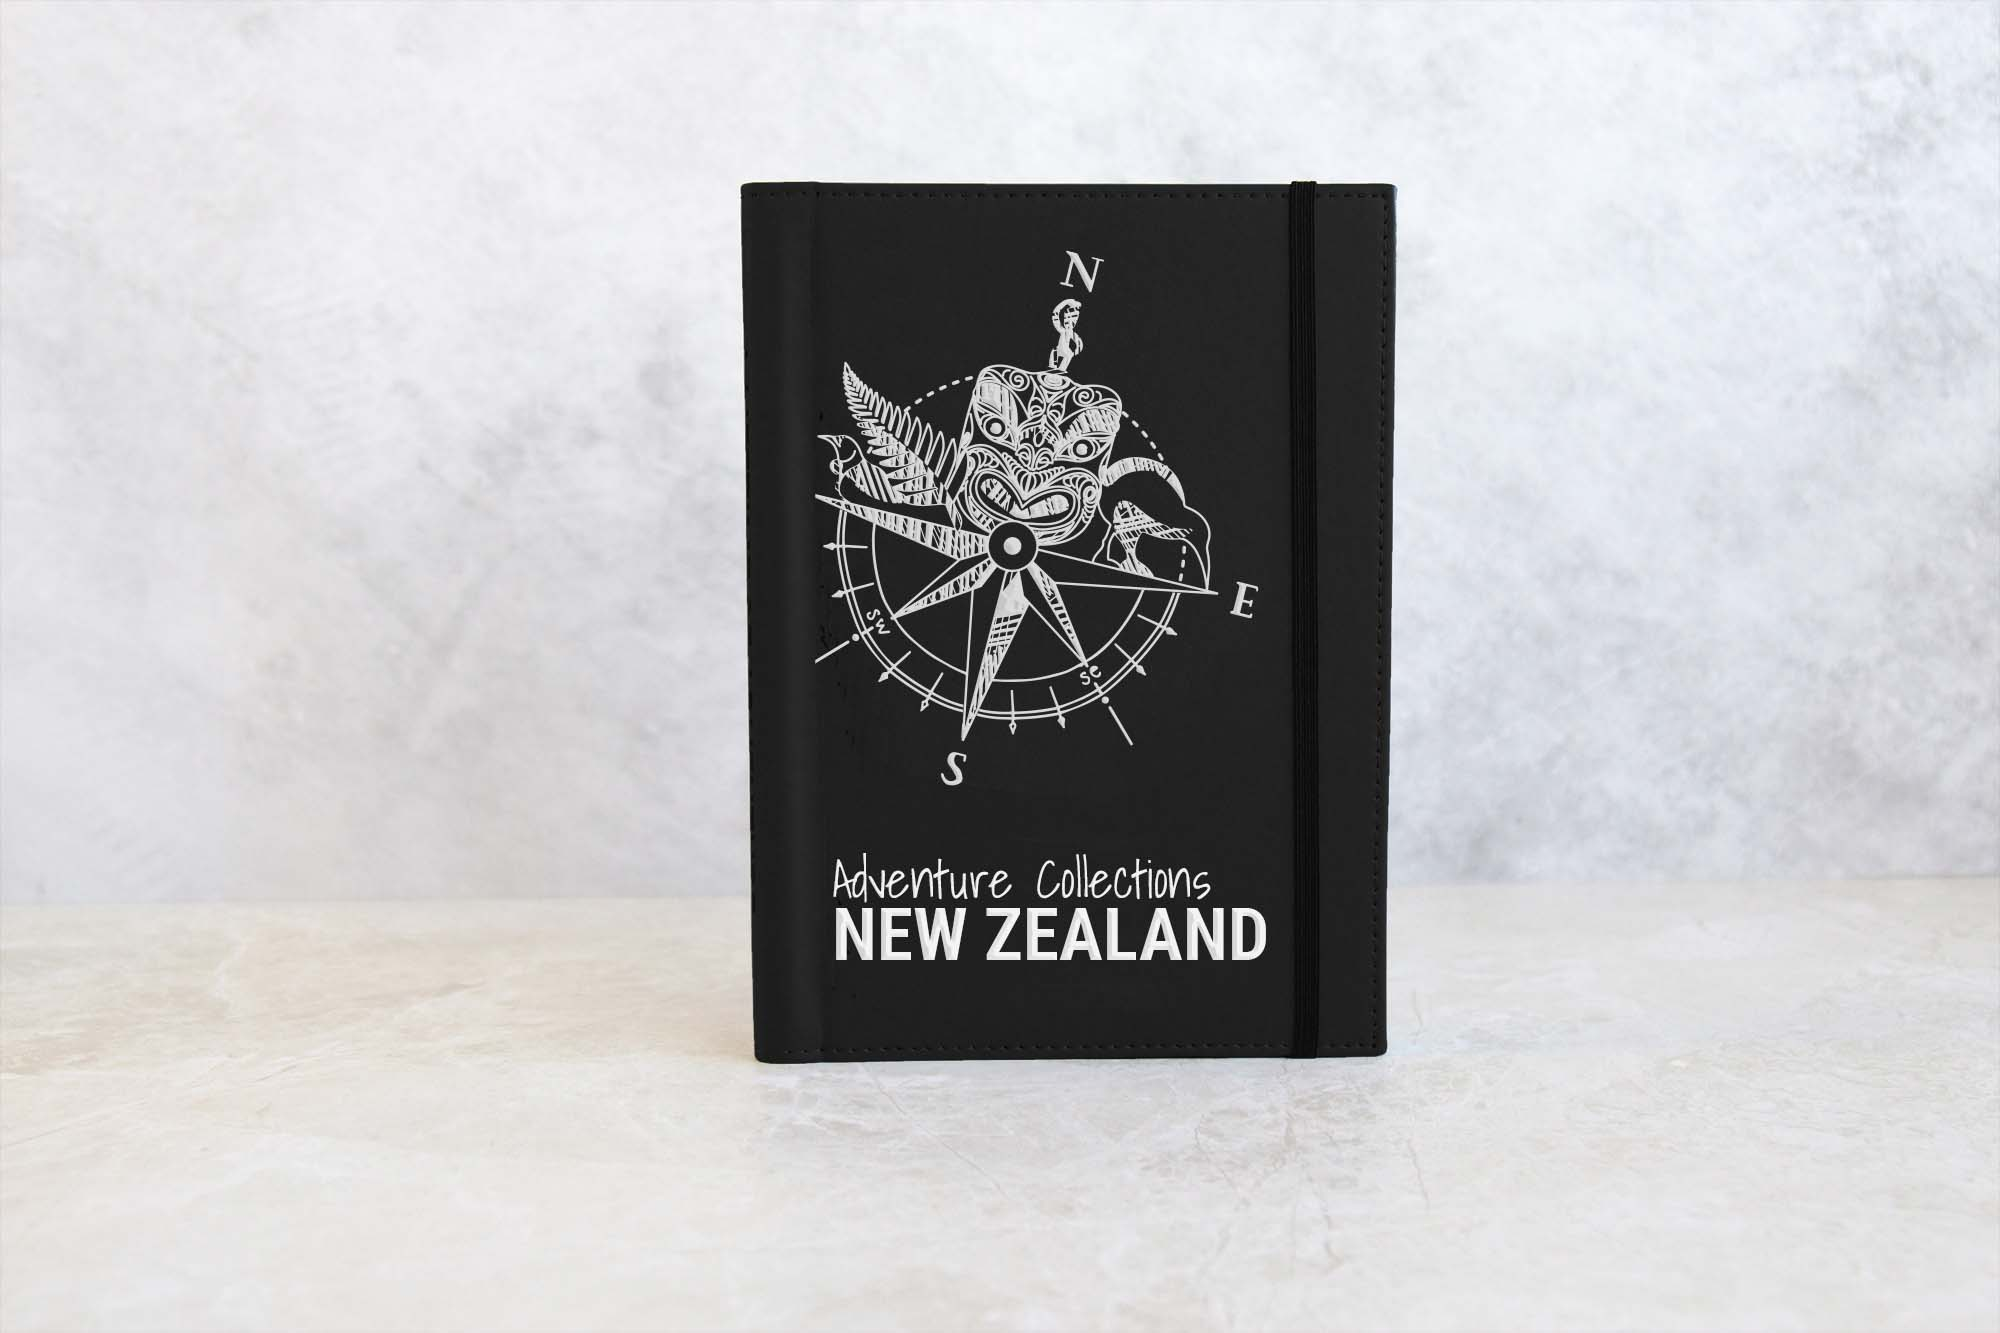 PRE-ORDER Adventure Collections New Zealand via @chooicenz